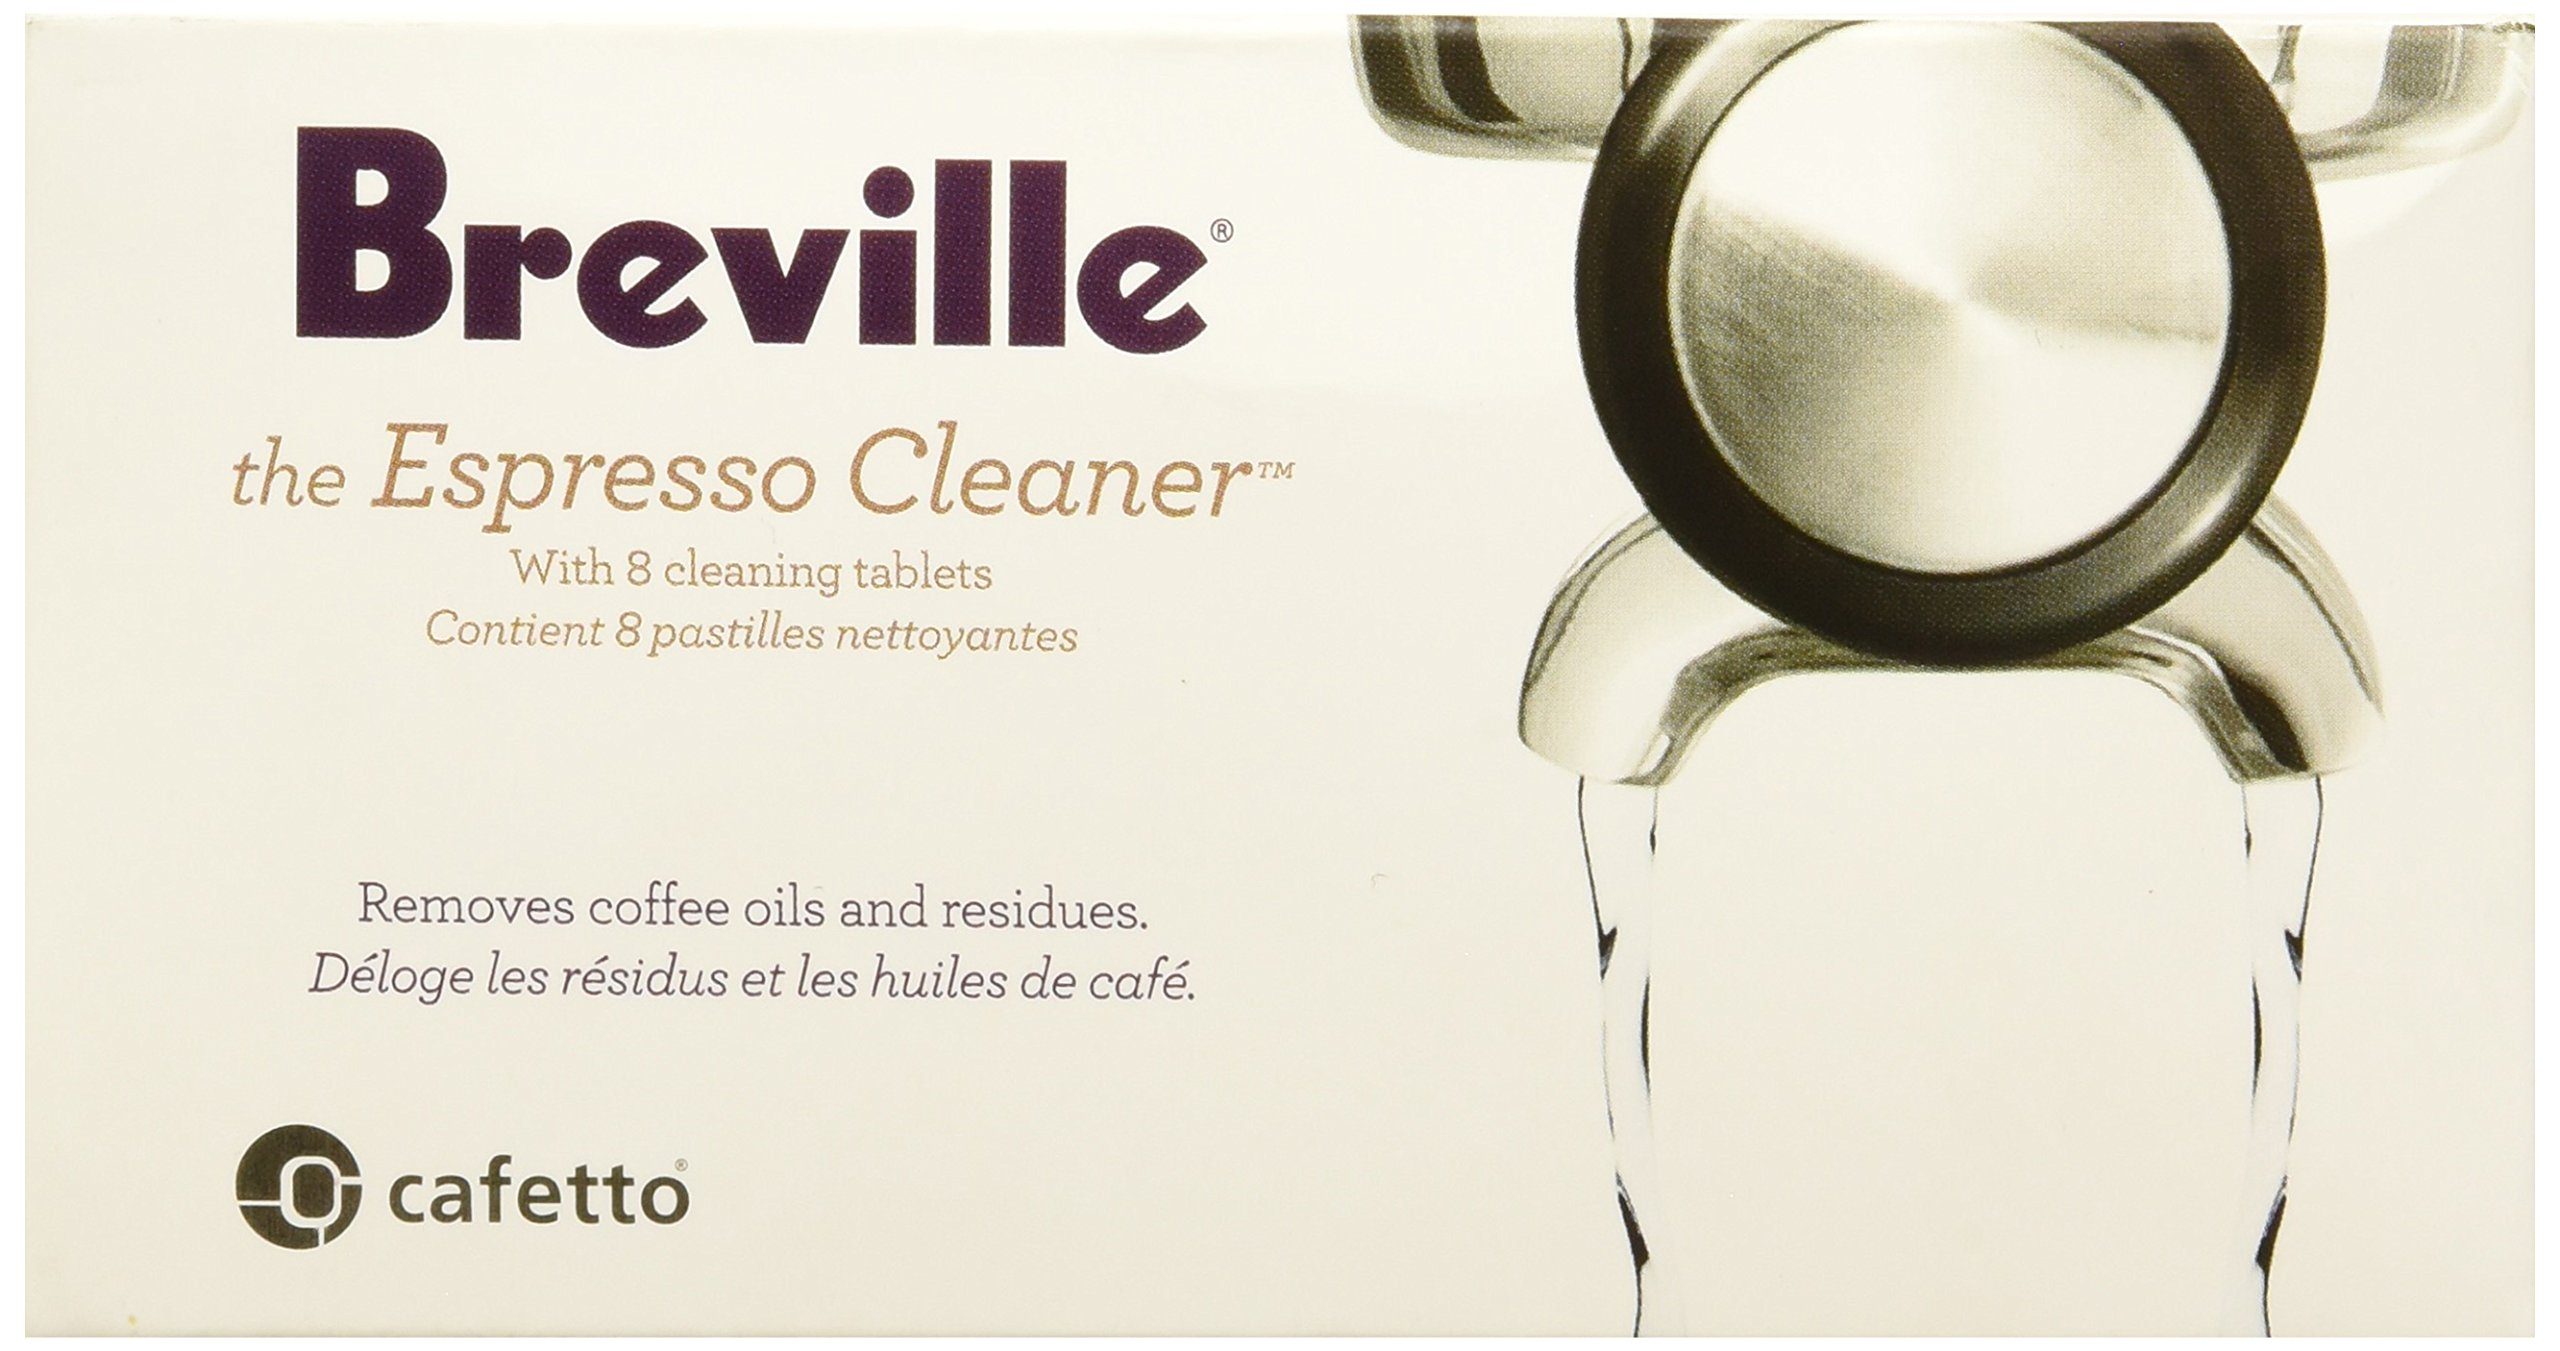 Breville BEC250 Breville BEC250 8-Pack Espresso Cleaning Tablets, White by Breville